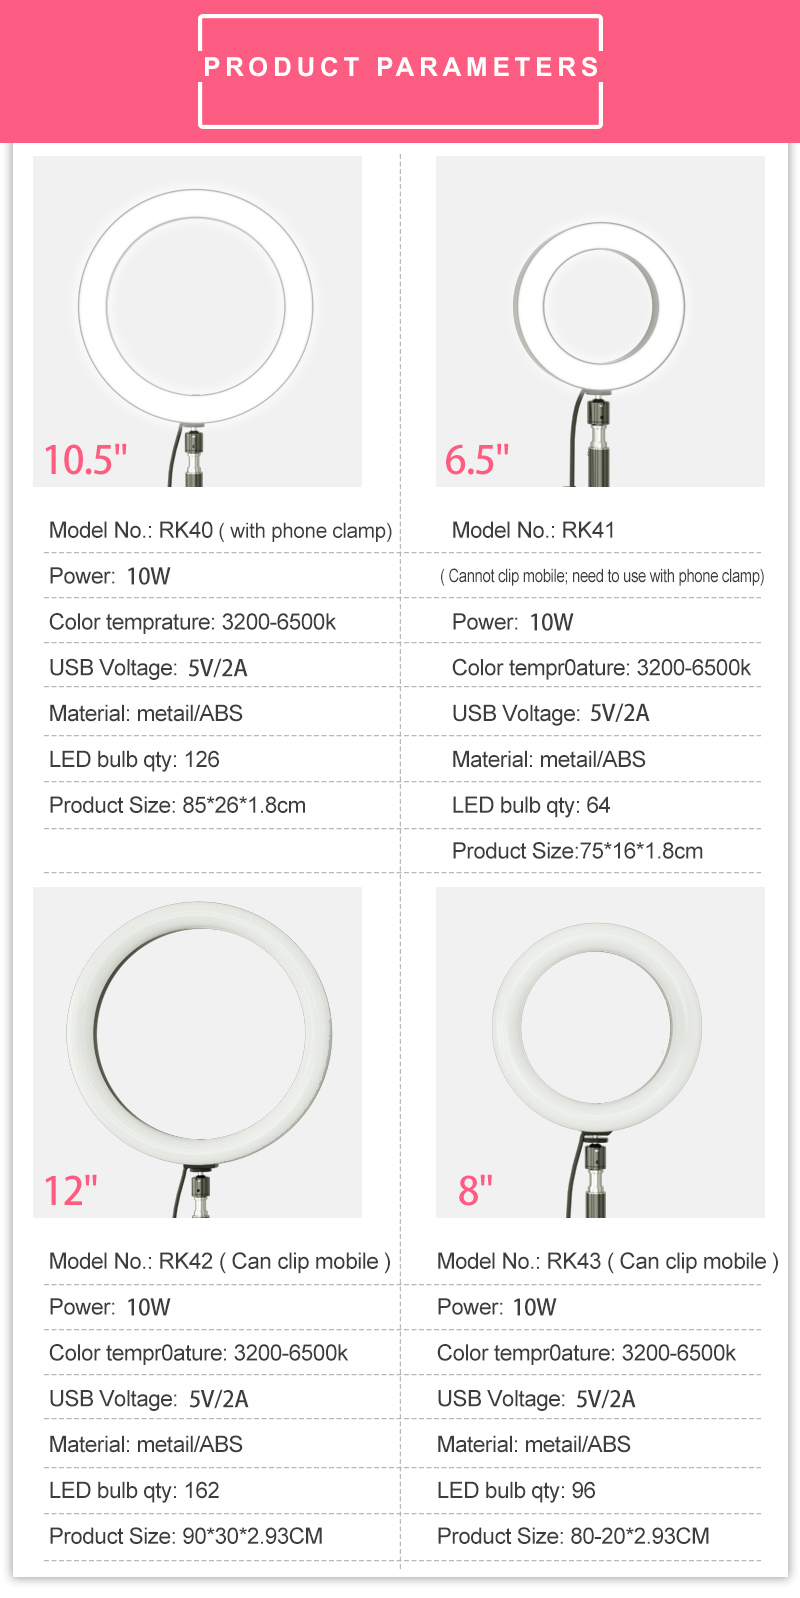 Lcose Rk41 Selfie 16cm Mini Photo Studio Led Camera Ring Light Dimmable Phone Video Photography